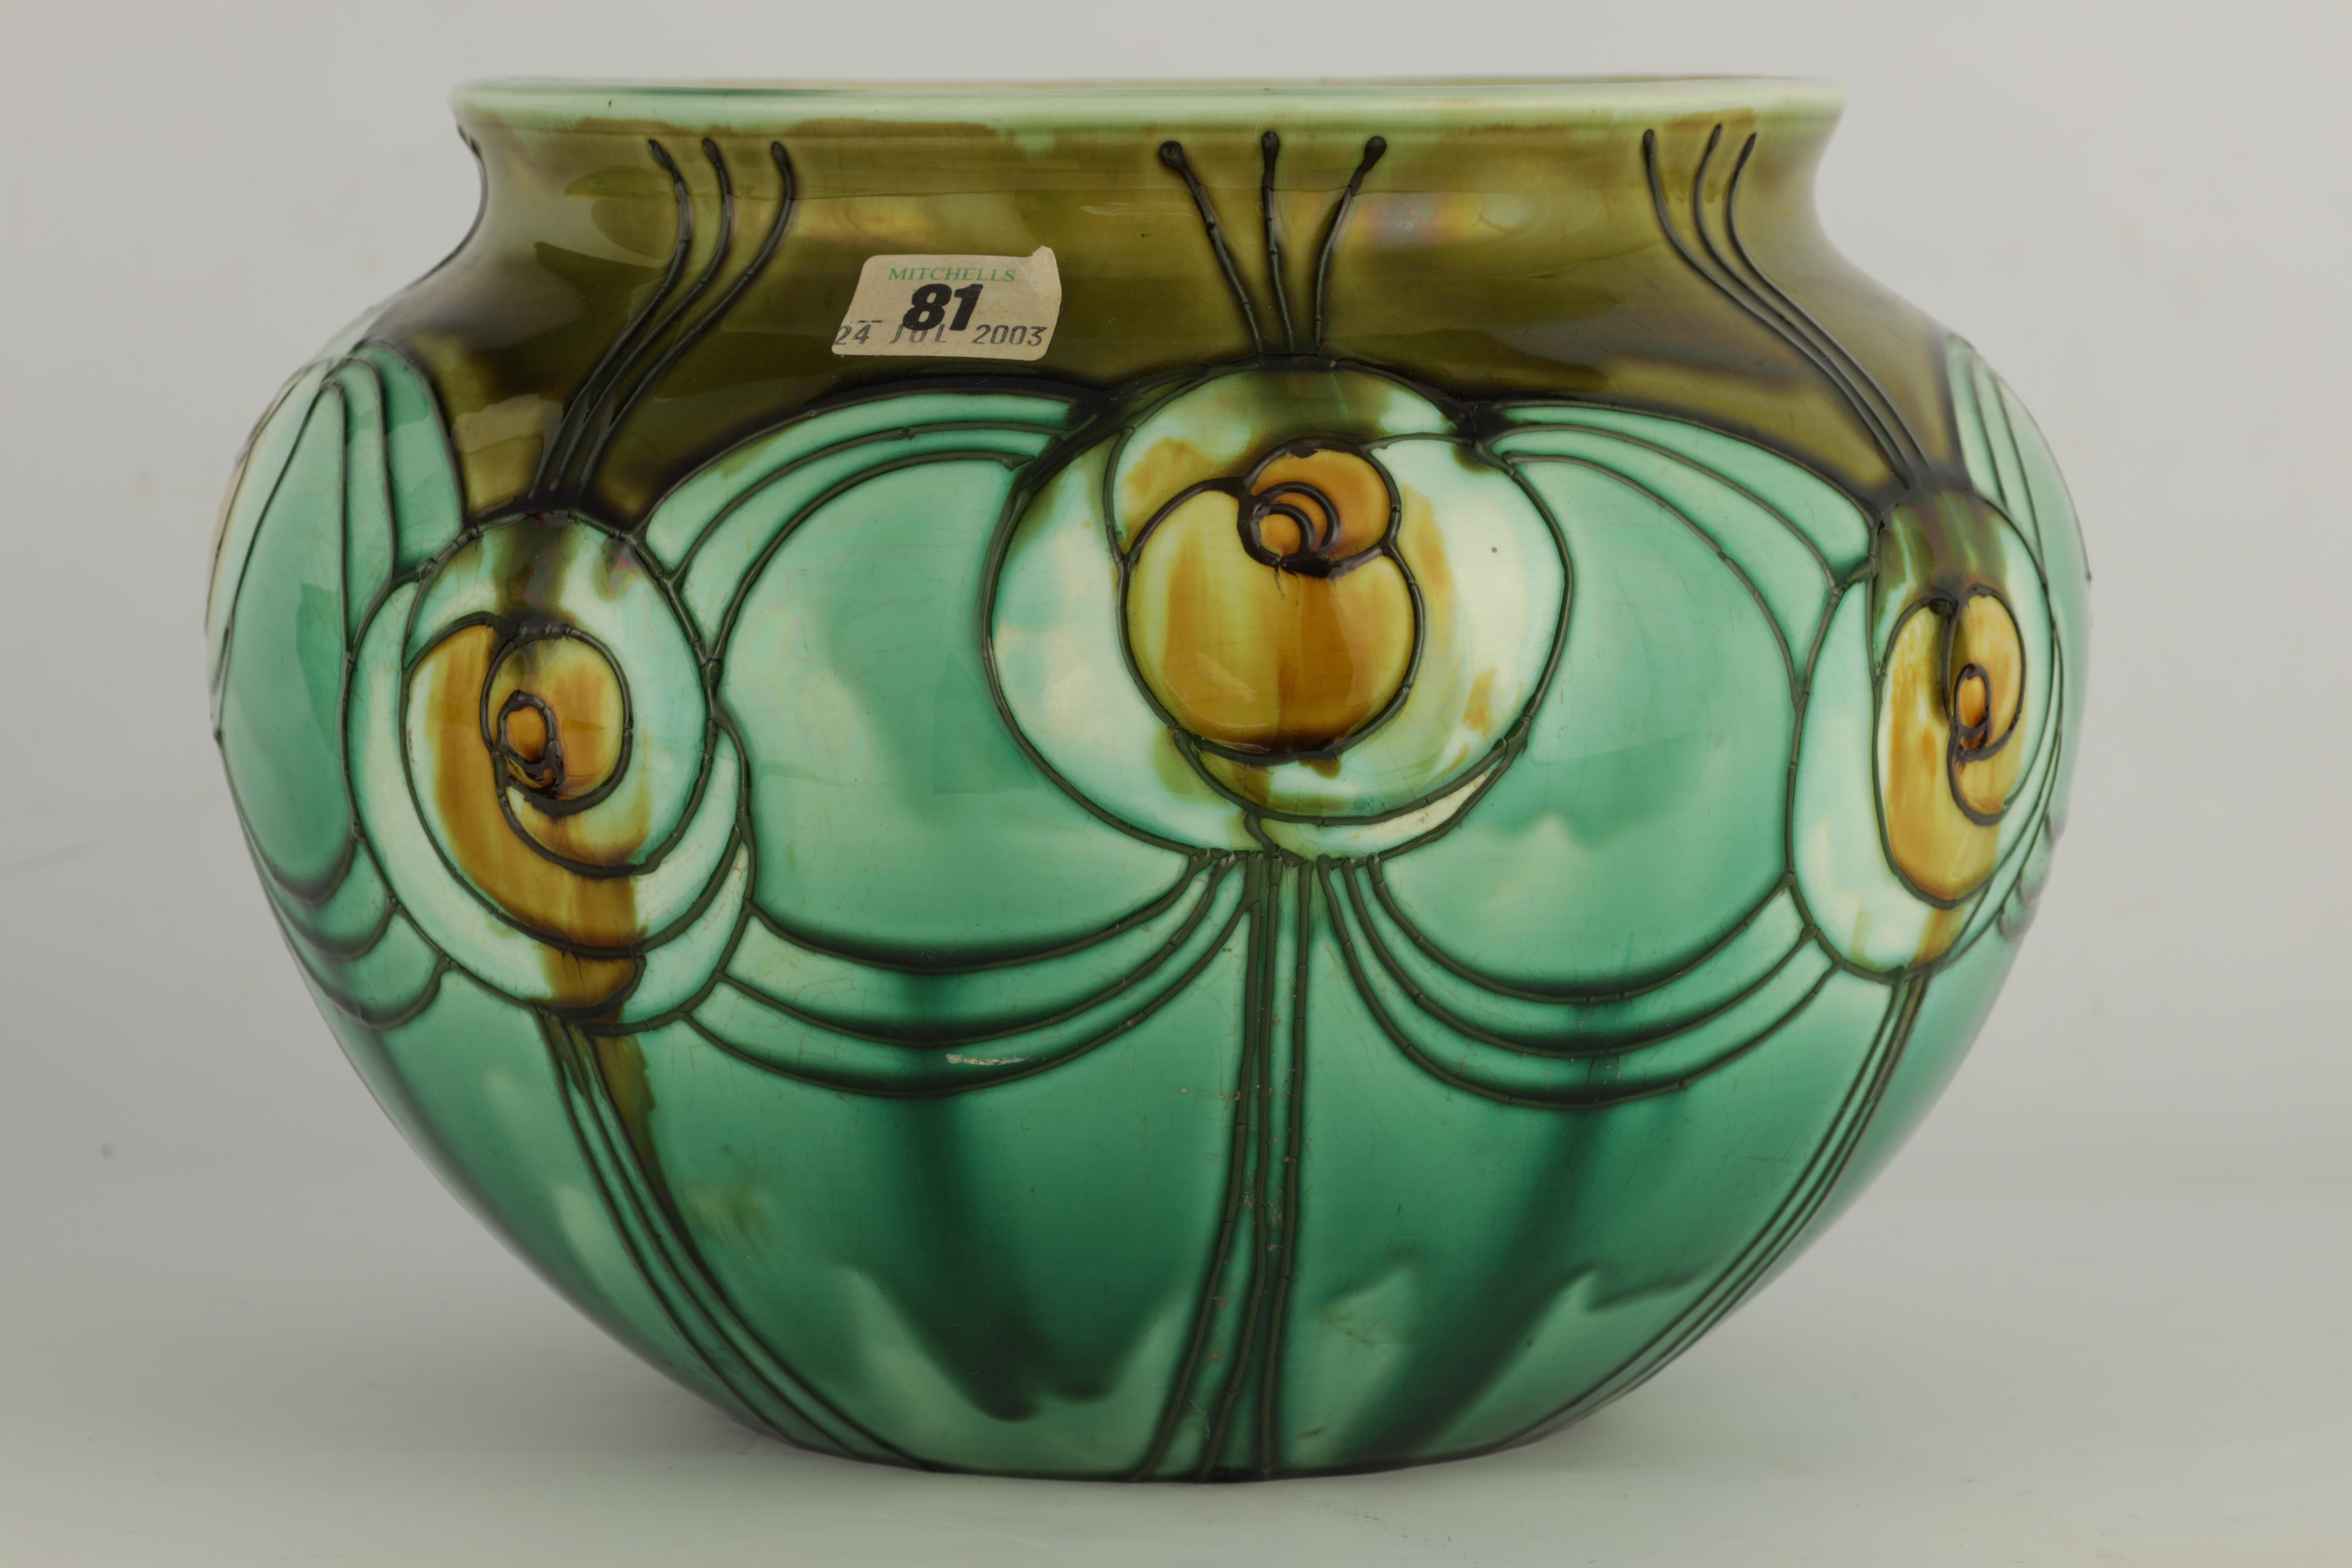 A MINTON LTD SECESSIONIST WARE LARGE BULBOUS JARDINIERE tube lined and decorated with stylised green - Image 4 of 5